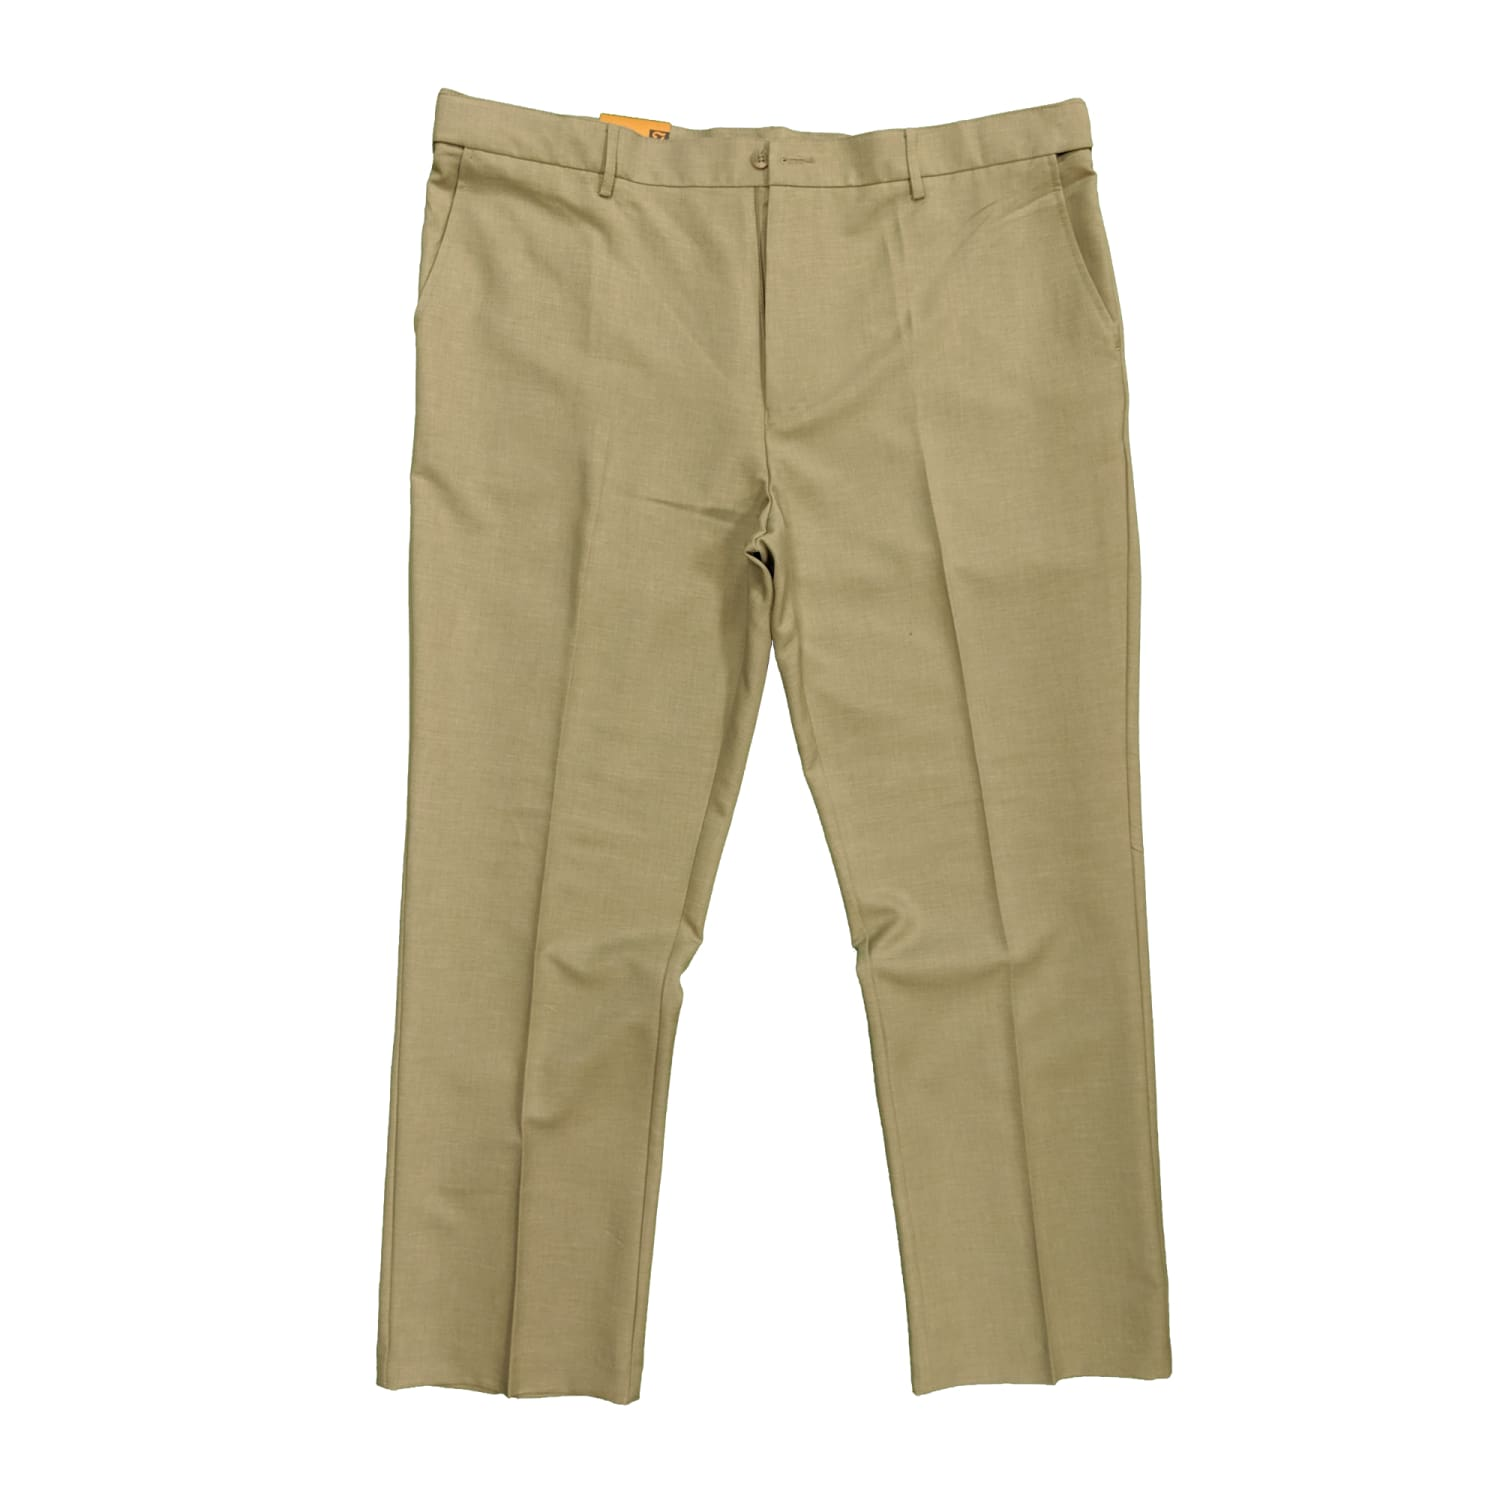 Farah Trousers - 263205 - Soft Taupe 1